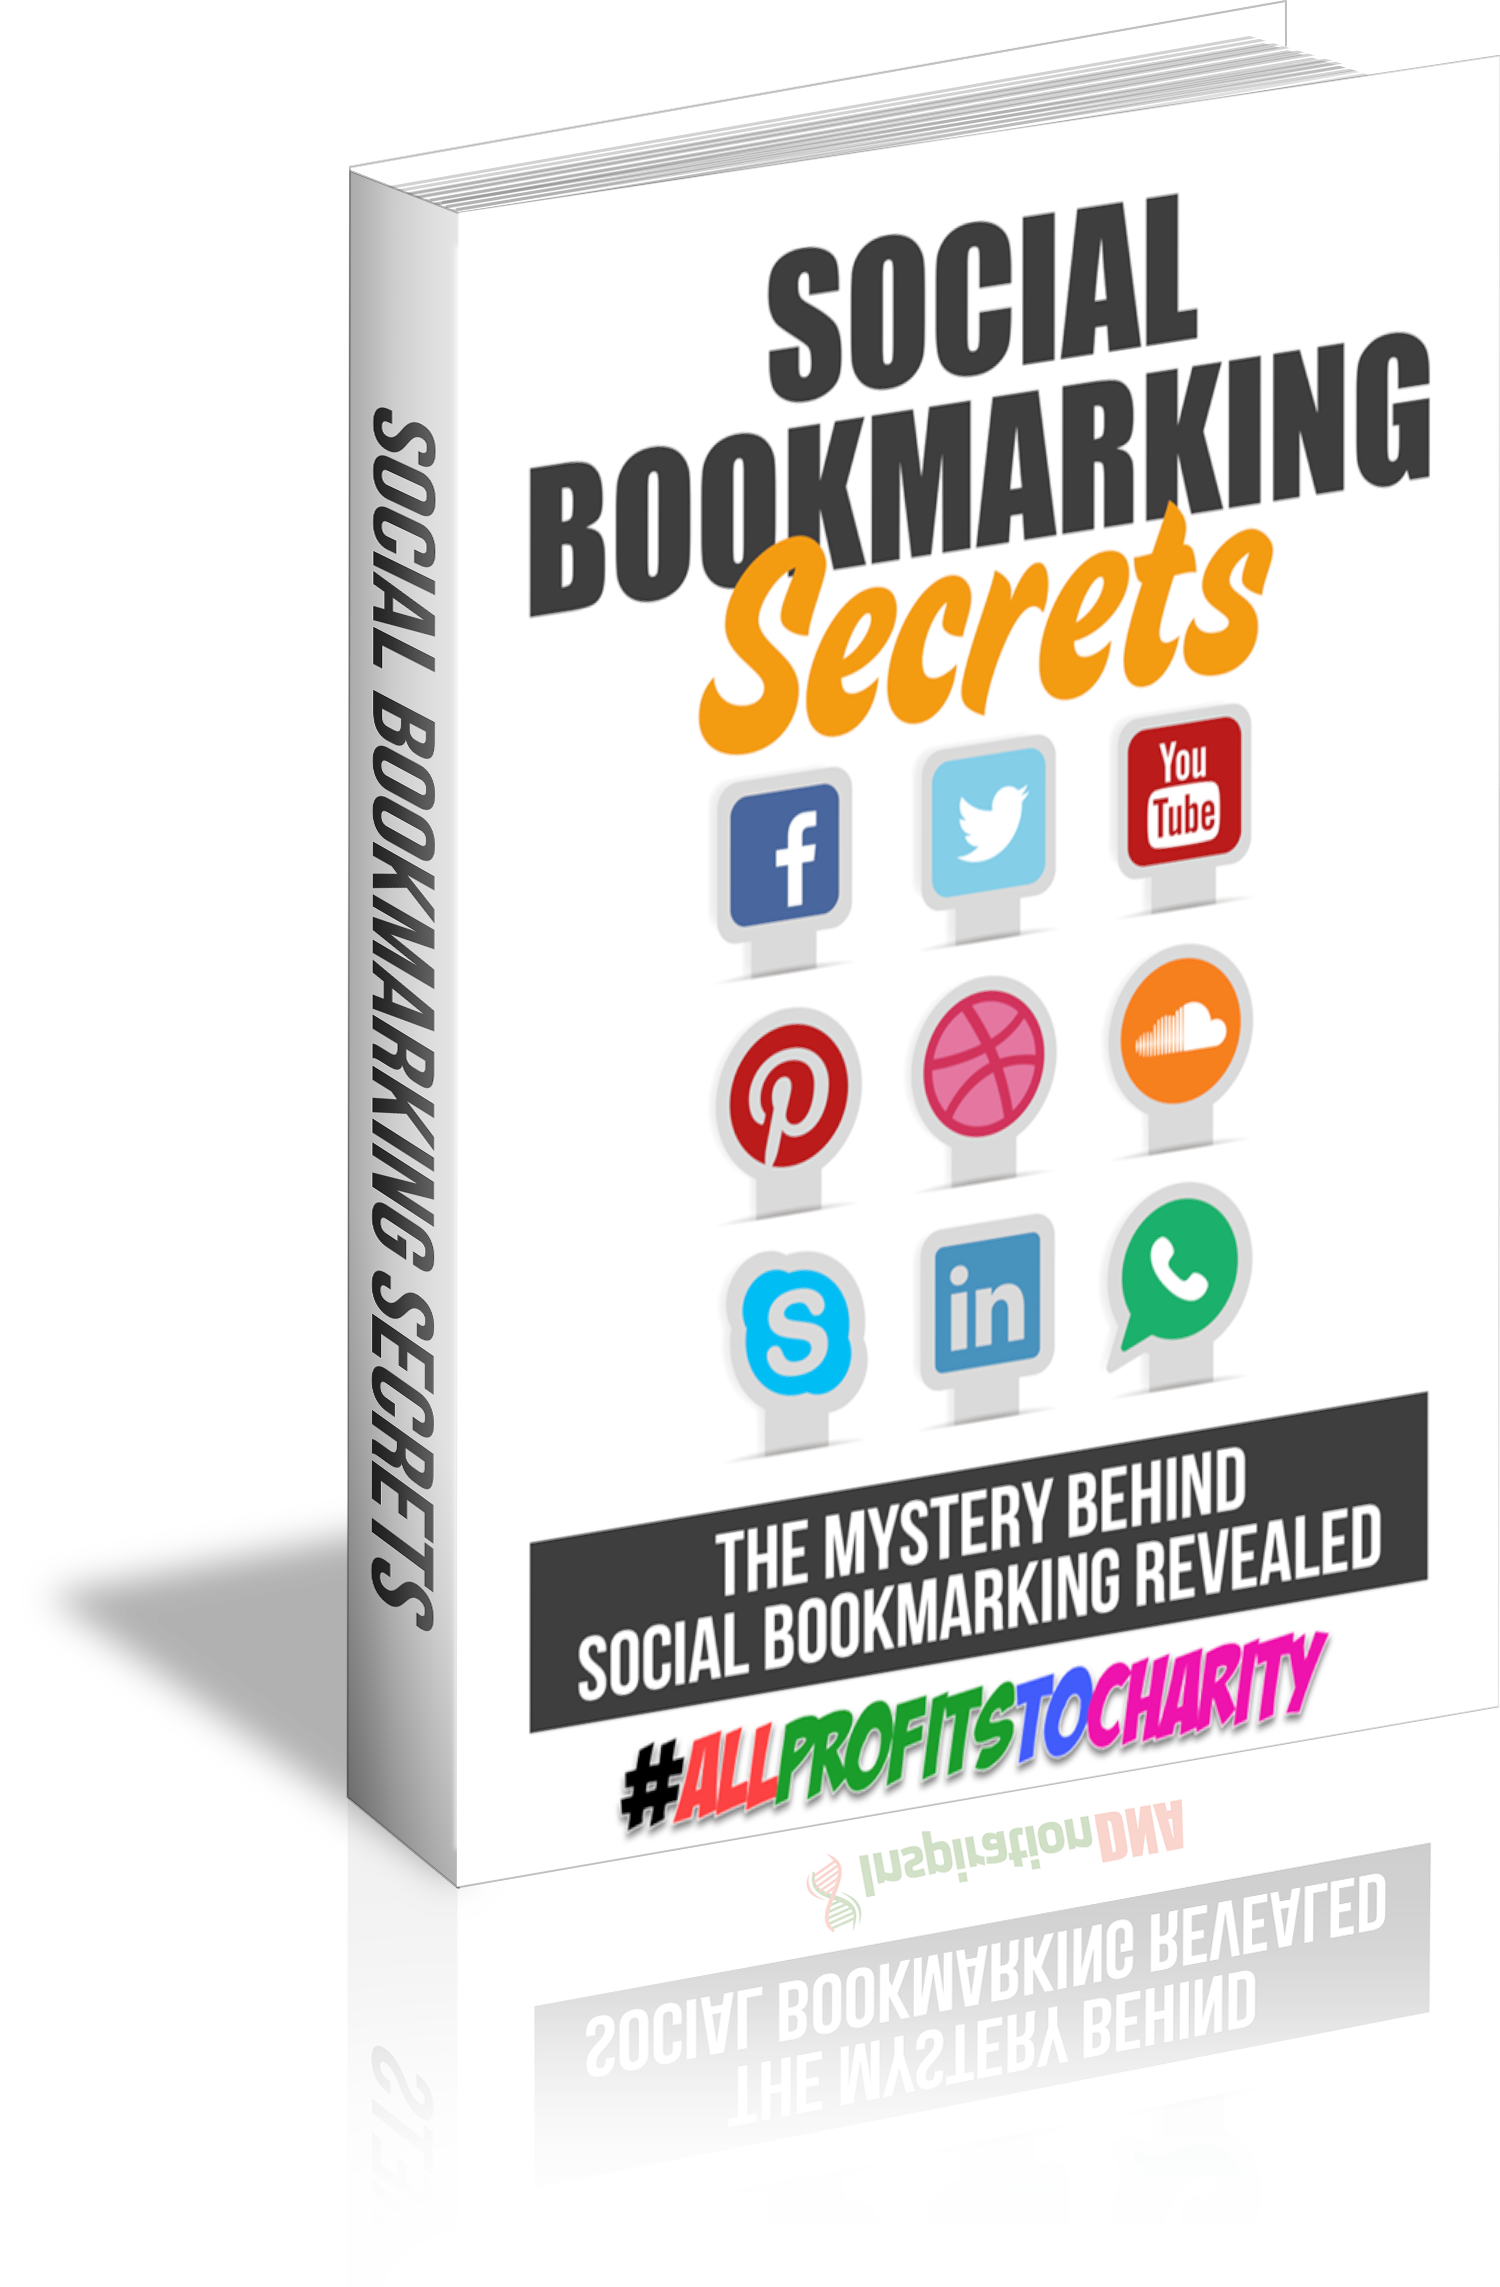 social bookmarking secrets cover